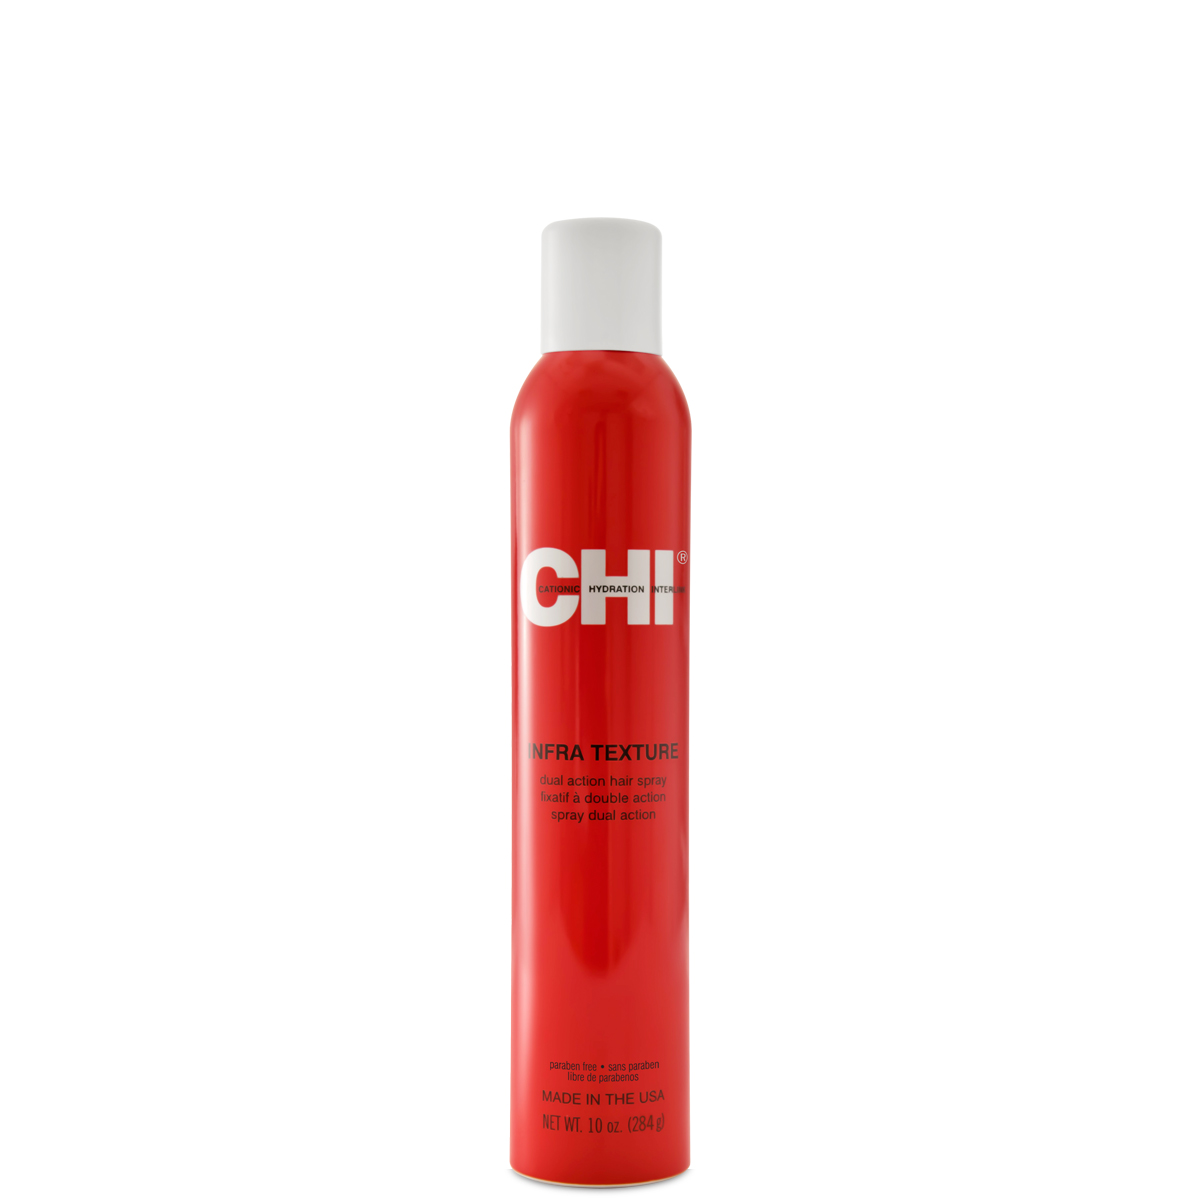 CHI Air Spin N Curl been all my life, themamaqueen.com – Features CHI Air Spin N Curl Iron, CHI Haircare / Professional Haircare Products